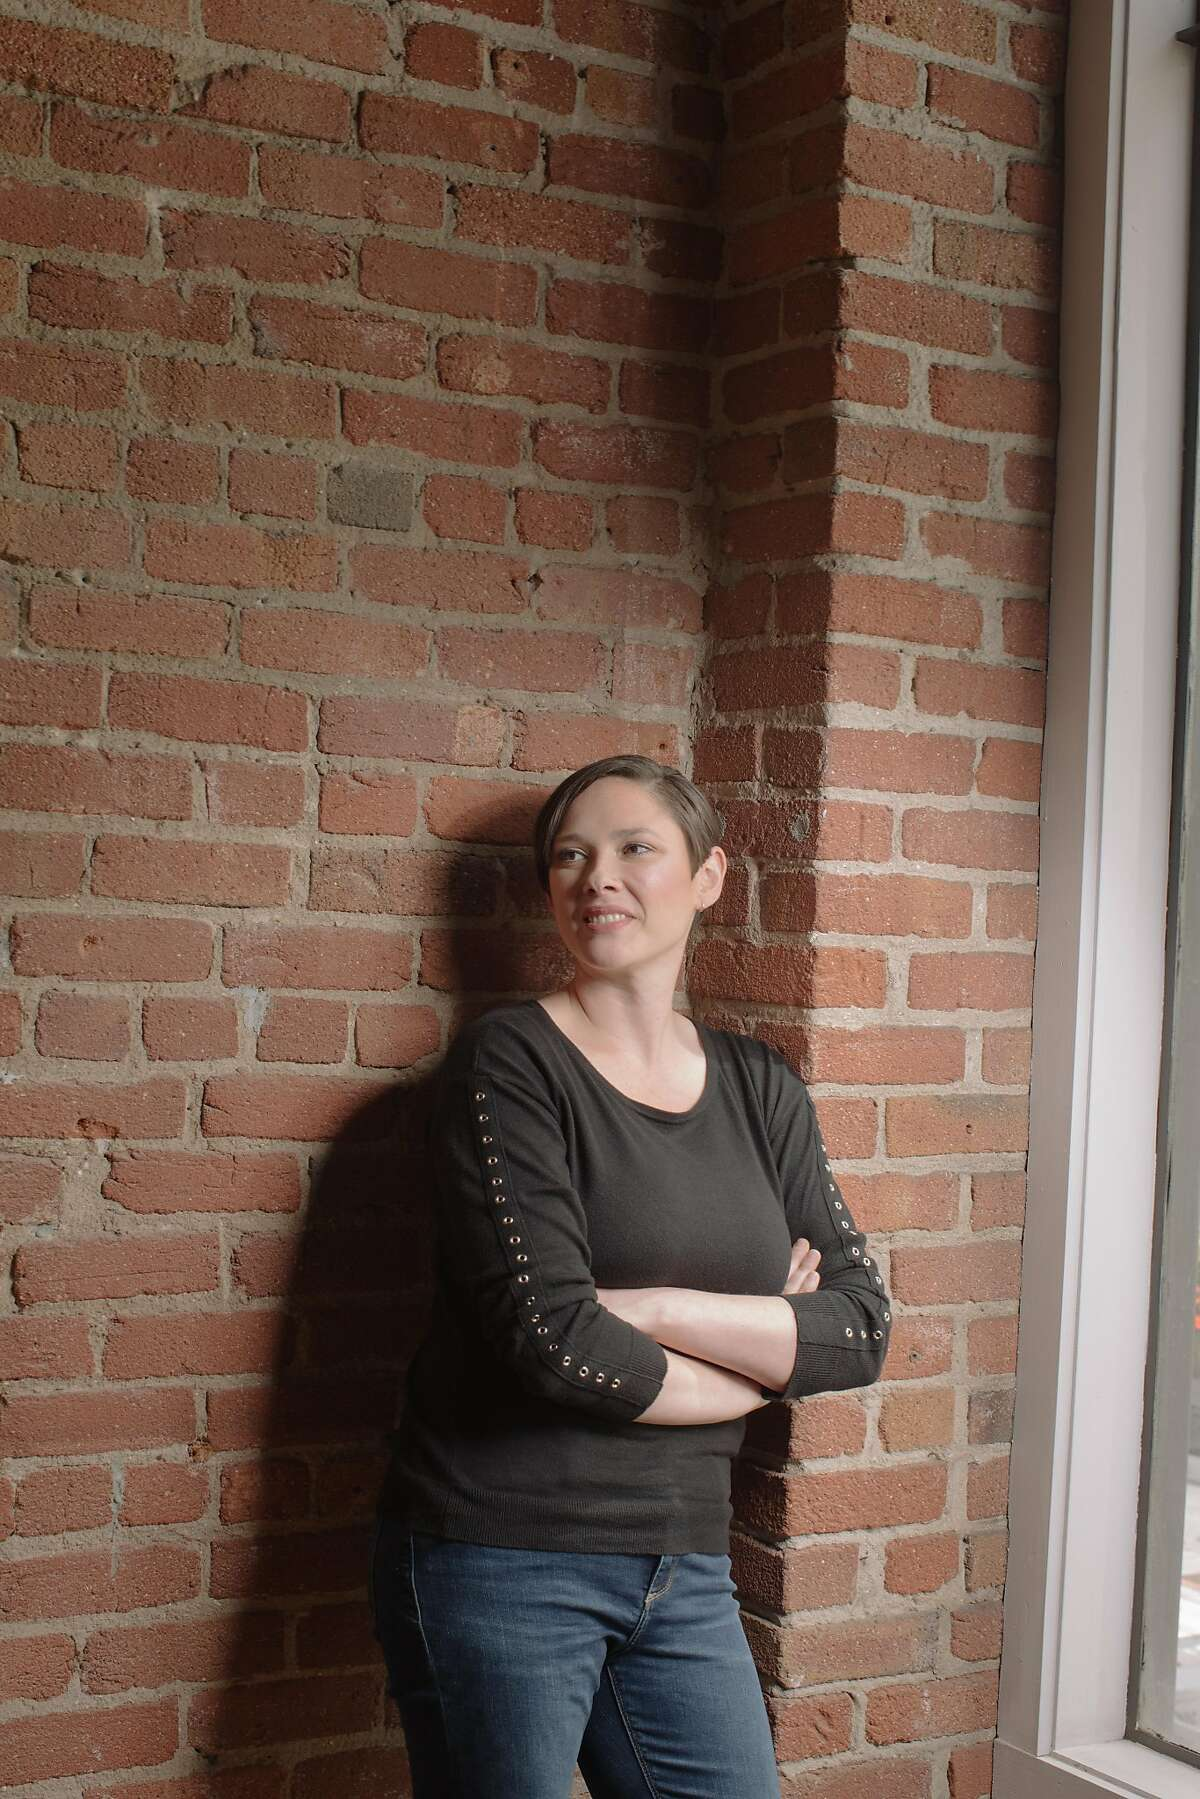 Alison Boden, CEO of Cybernet Entertainment, which runs the online fetish and BDSM site Kink.com, photographed in the Kink.com headquarters in San Francisco, California, on May 9th, 2018.